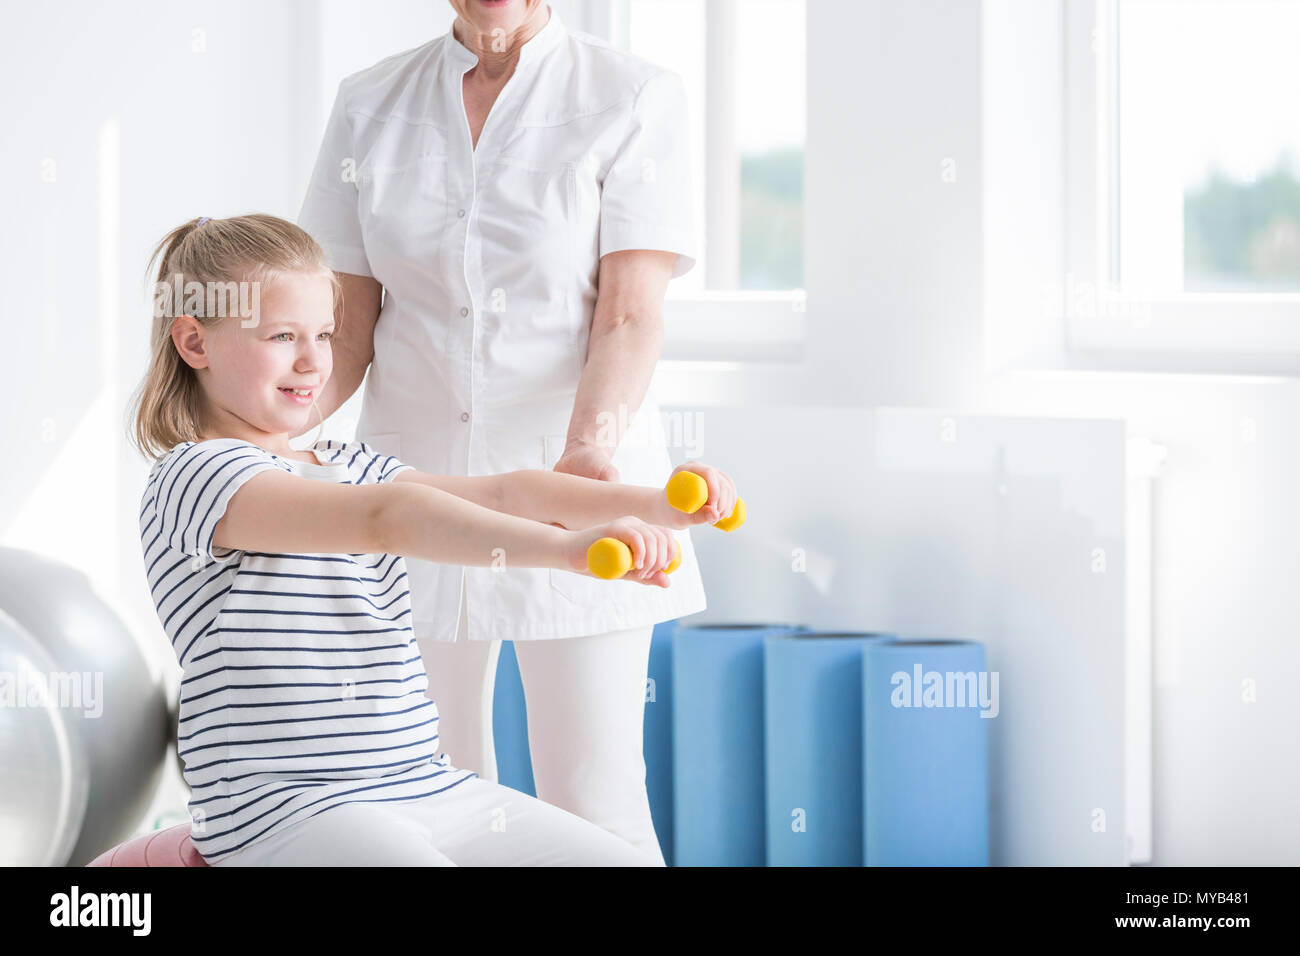 Physiotherapist and child exercising with yellow dumbbells in rehabilitation room - Stock Photo